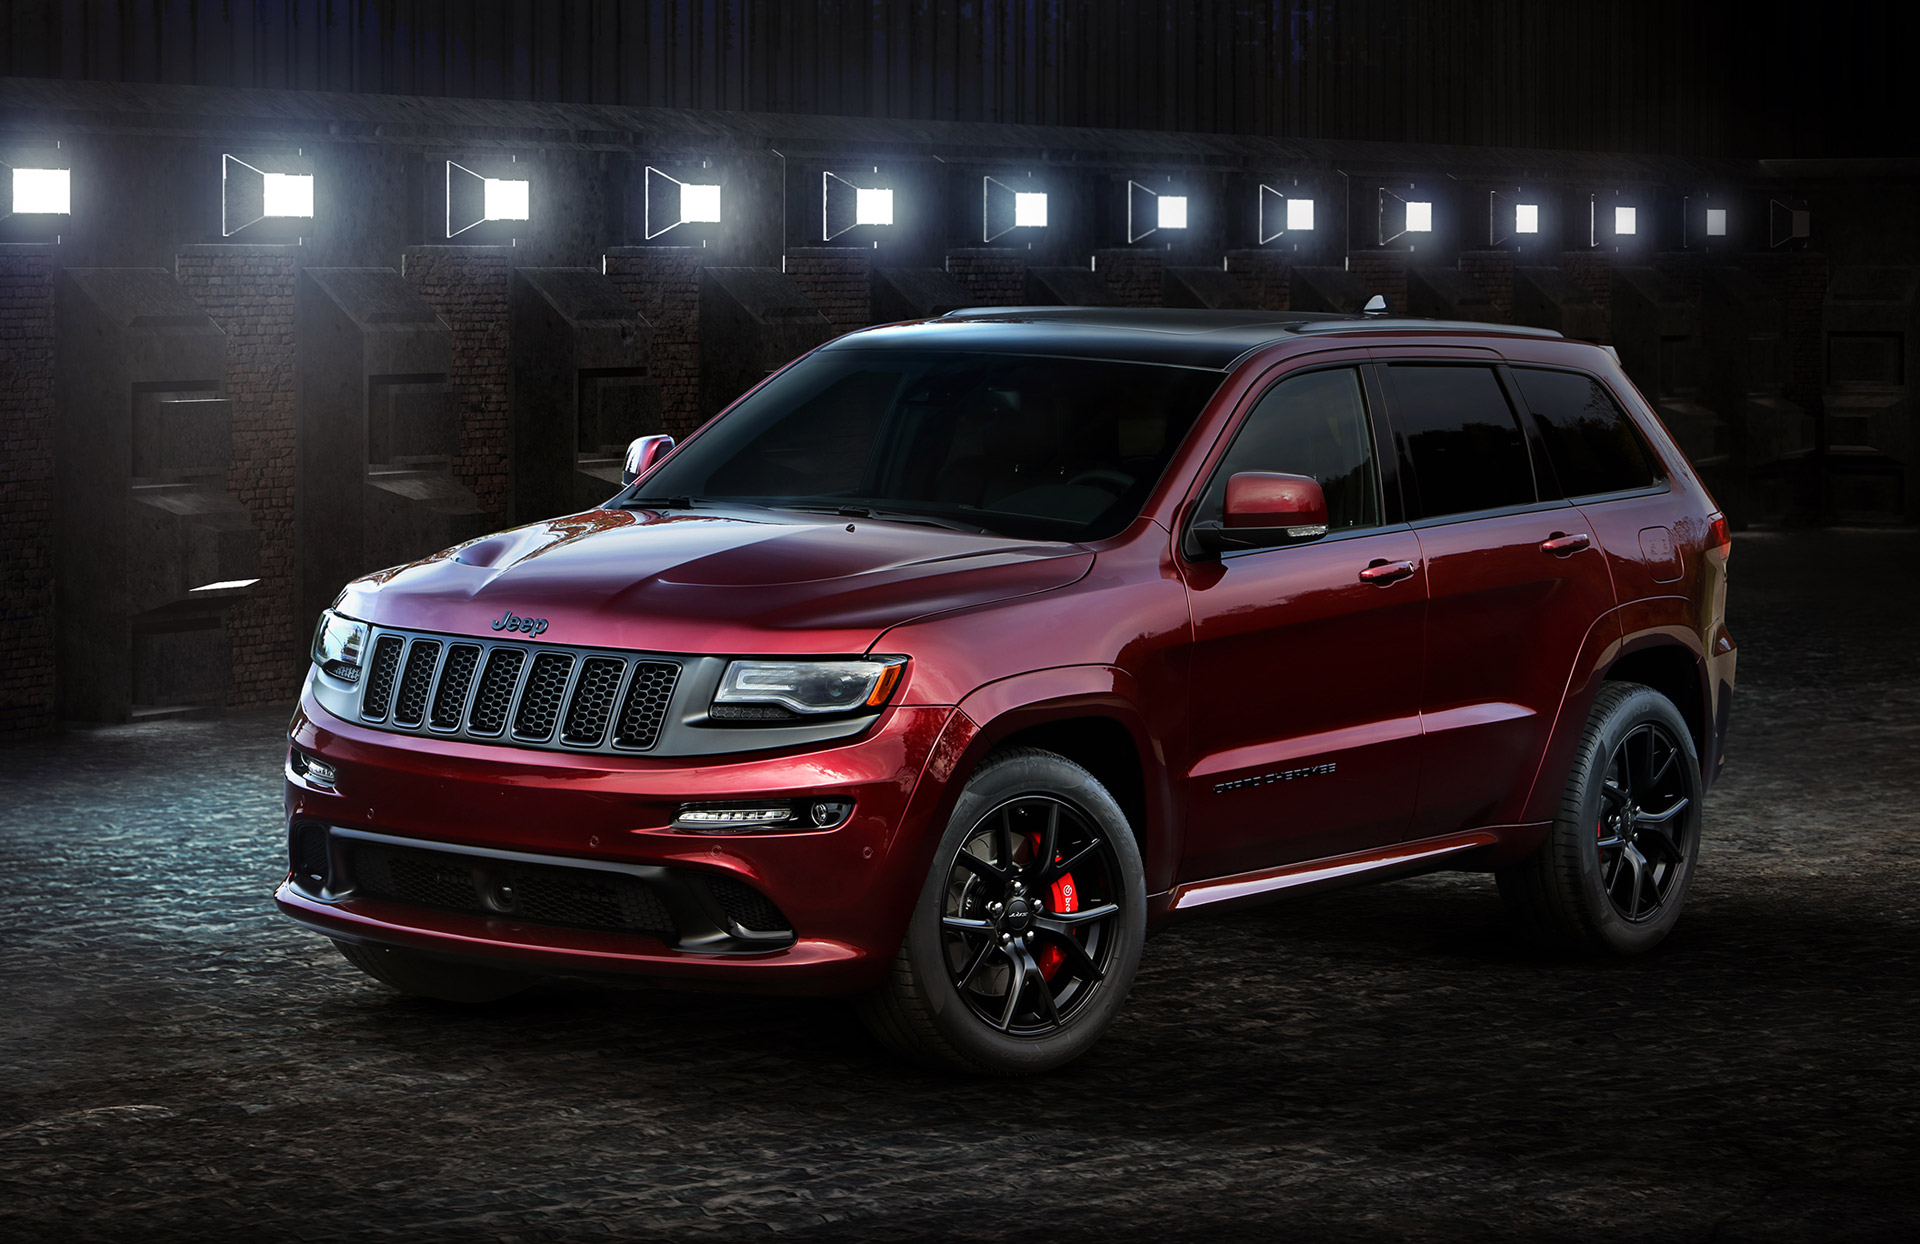 2016 Jeep Grand Cherokee Srt #14